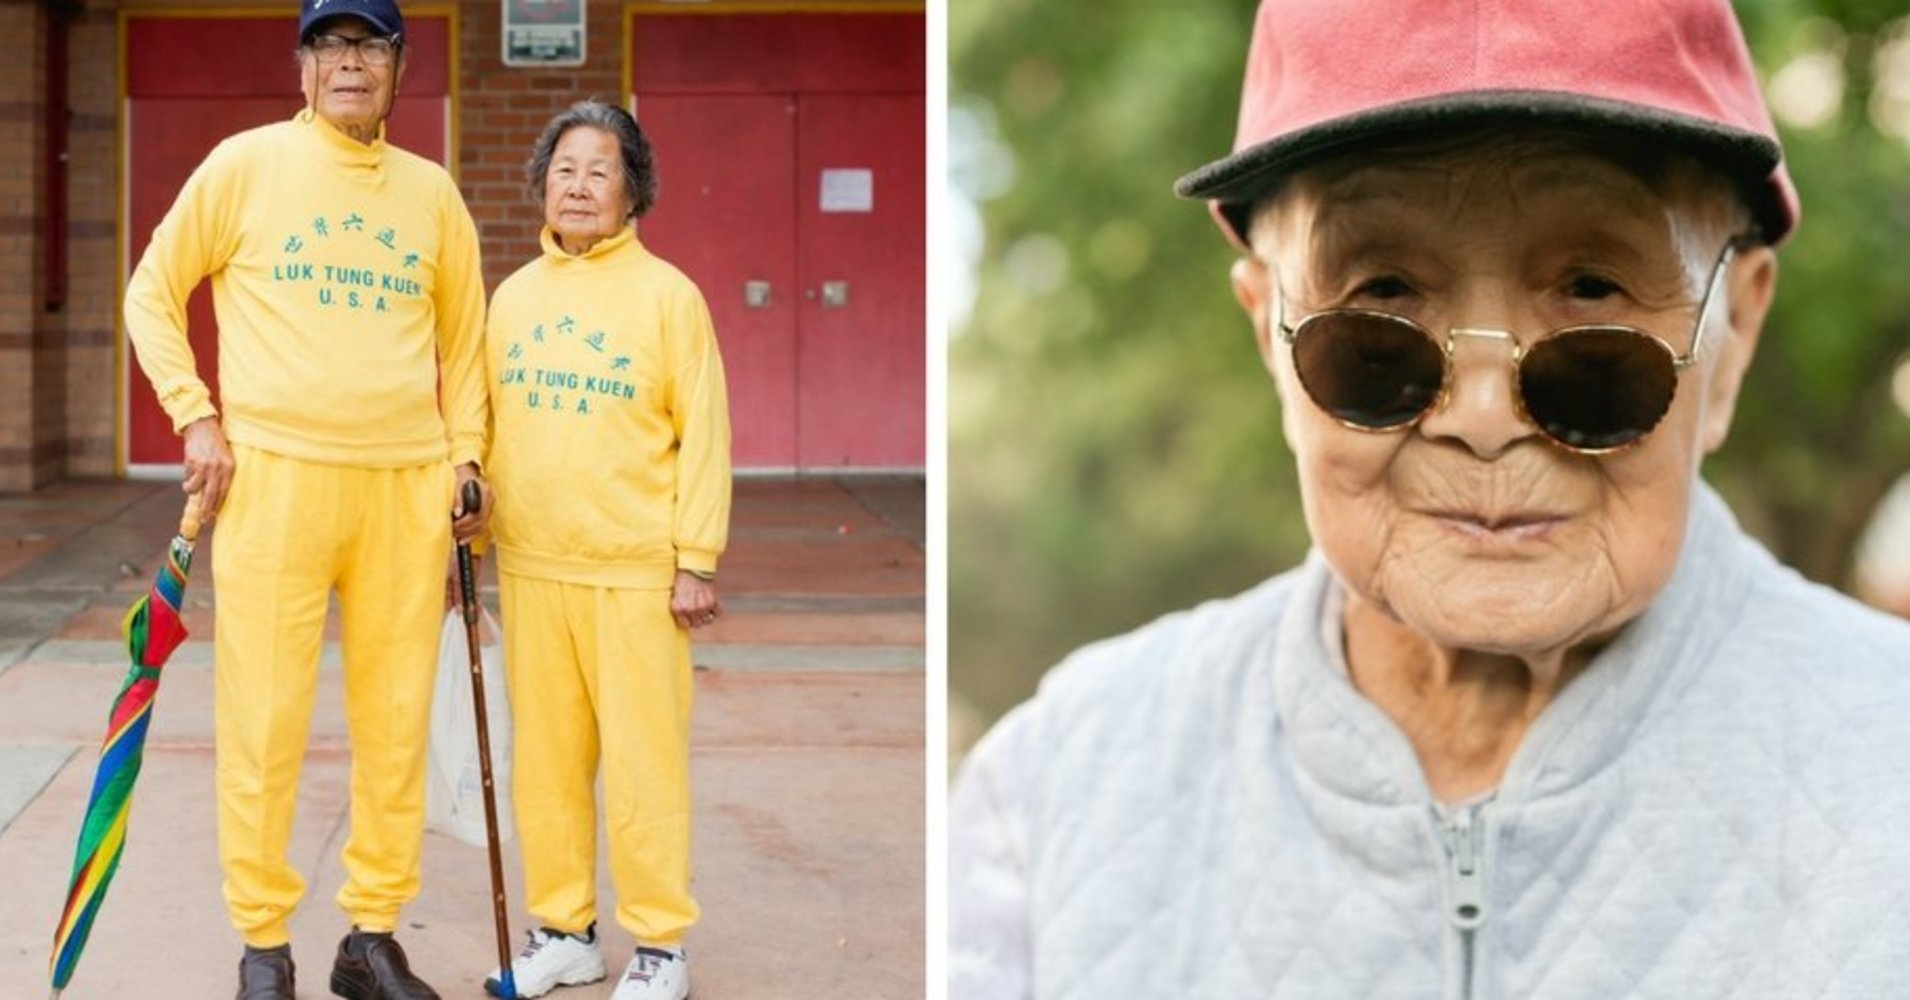 14 Chinatown Seniors With More Swag Than Anyone You Know